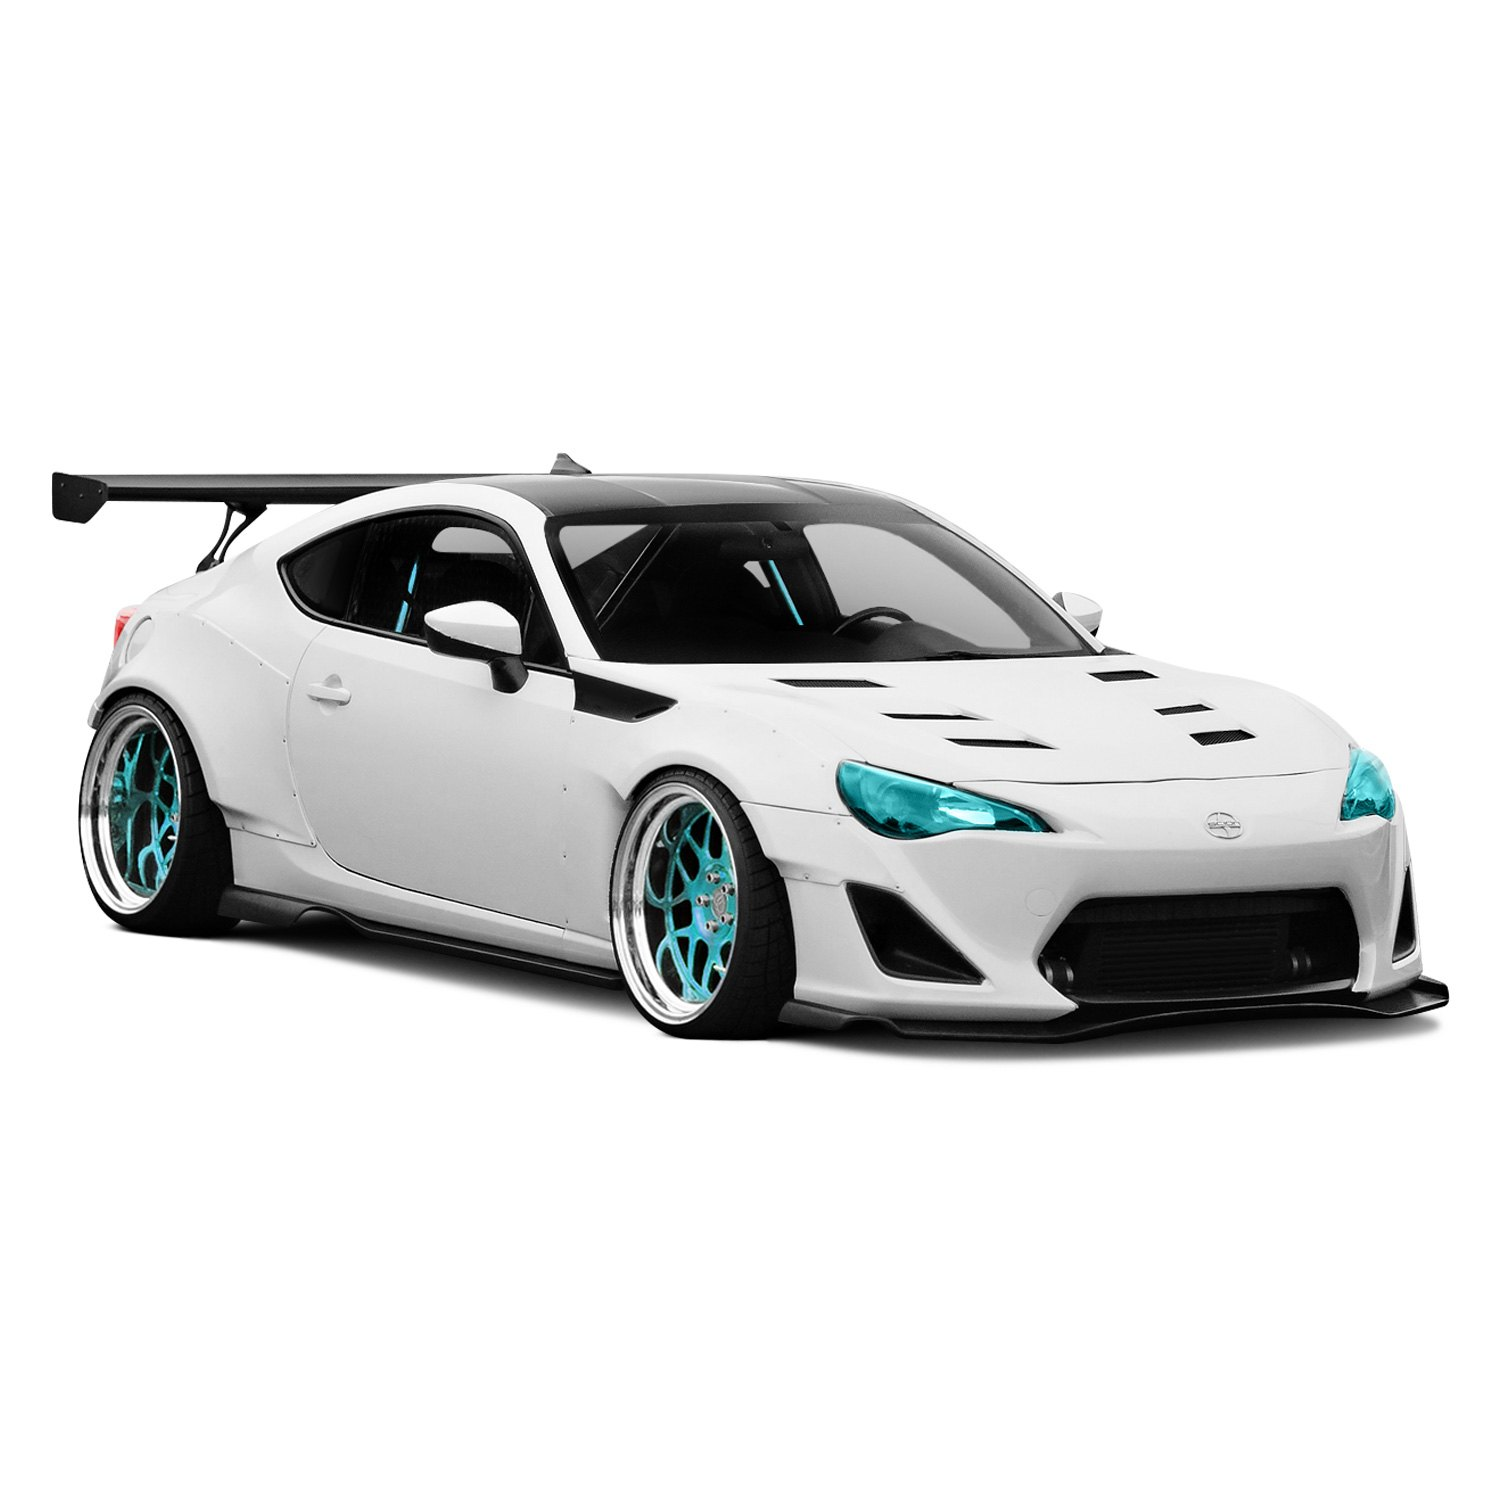 Car Body Kits >> What Type Of Body Kit Material Should I Choose